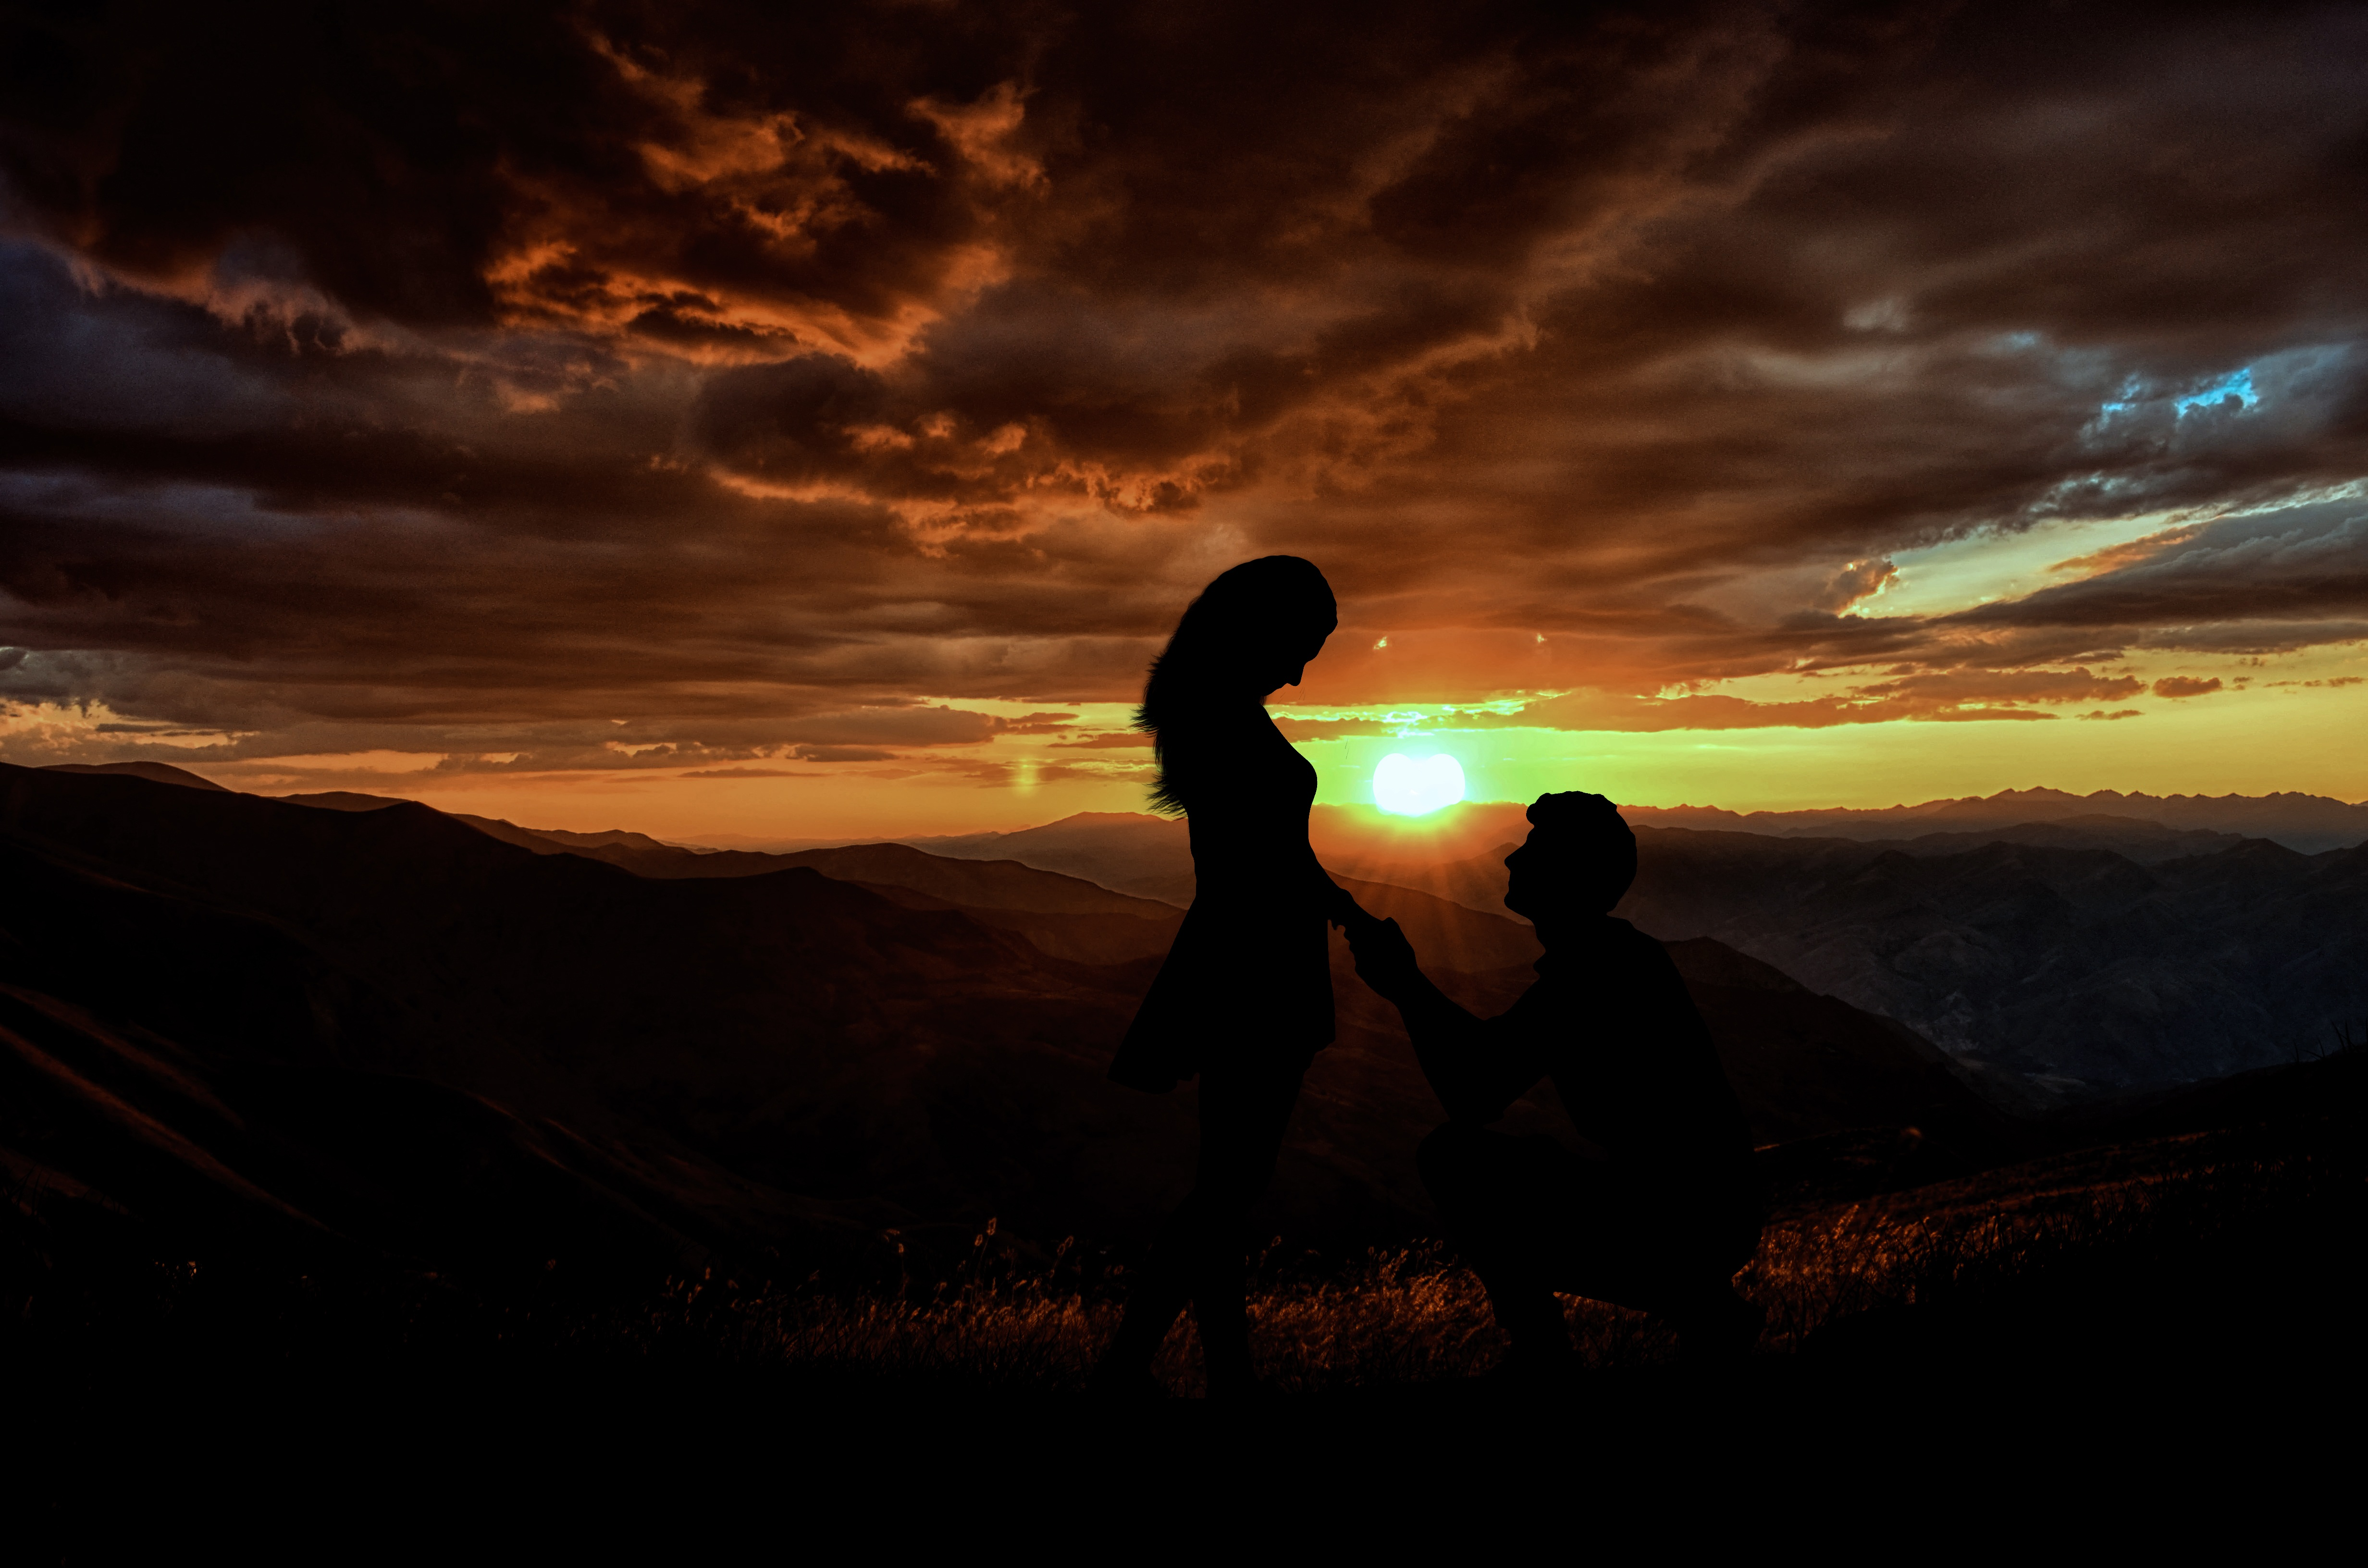 146 Love Couple Pic Images Wallpaper Pictures Hd 1080p: 1920x1080 Couple Silhouette 5k Laptop Full HD 1080P HD 4k